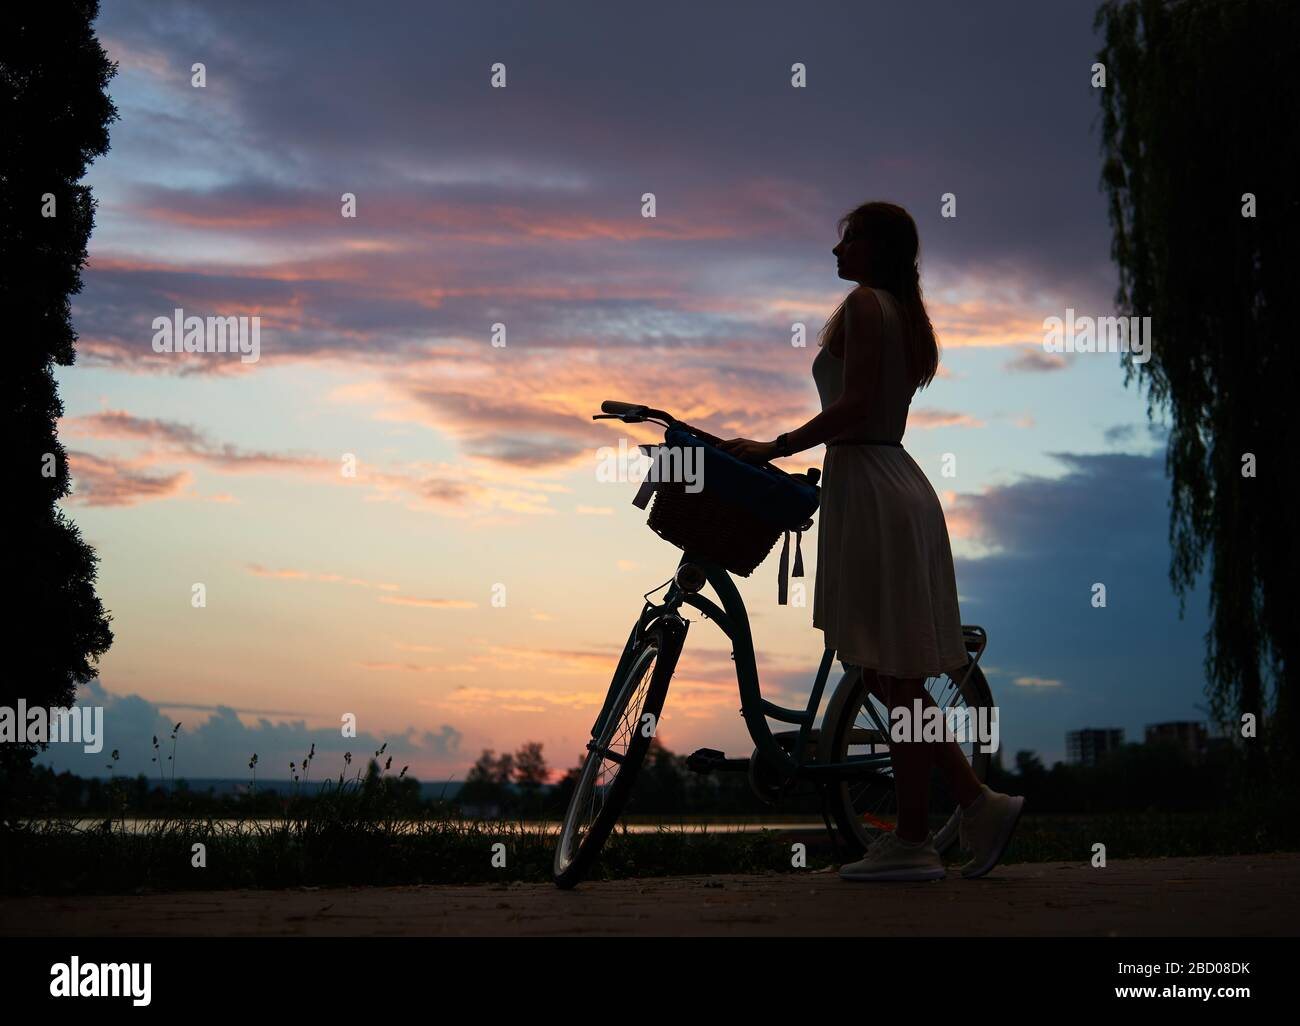 Woman in a light dress with retro bike under the sky at sunset. Enjoying a beautiful view of the evening sky with clouds colorful in summer. The concept of freedom and relaxation Stock Photo